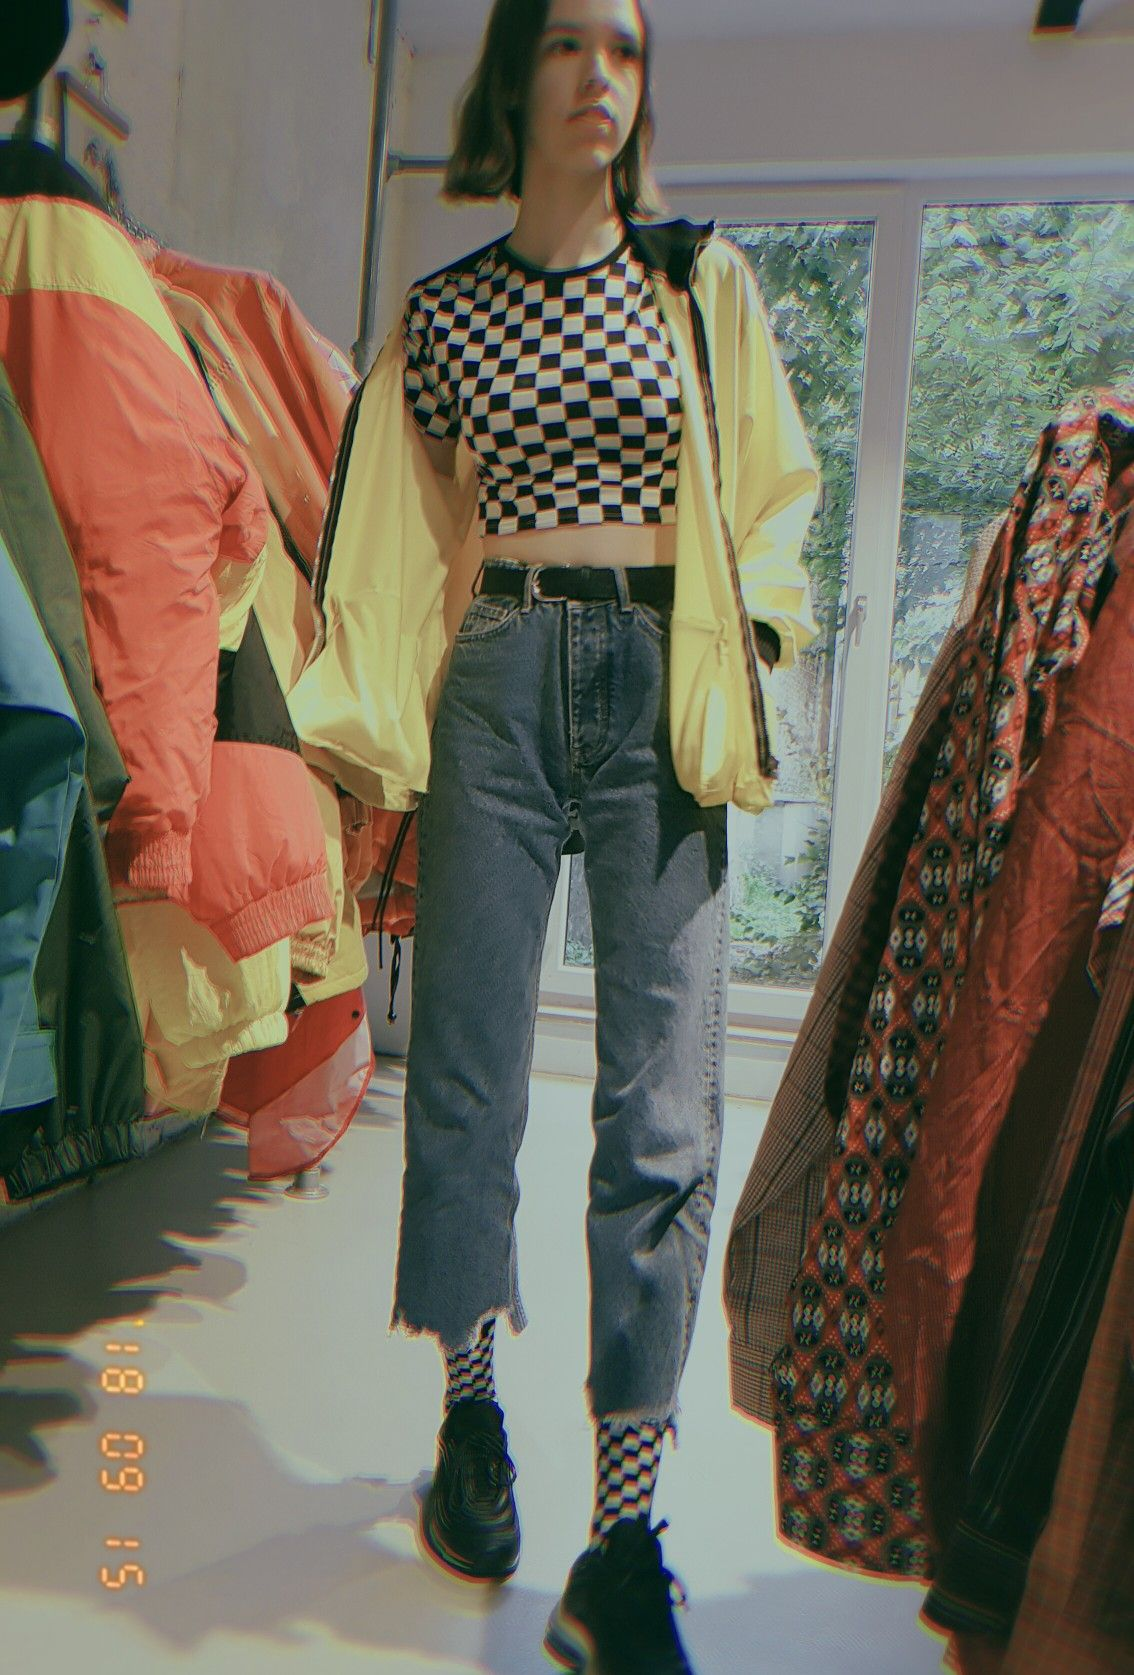 retro vintage fashion streetstyle in 2019